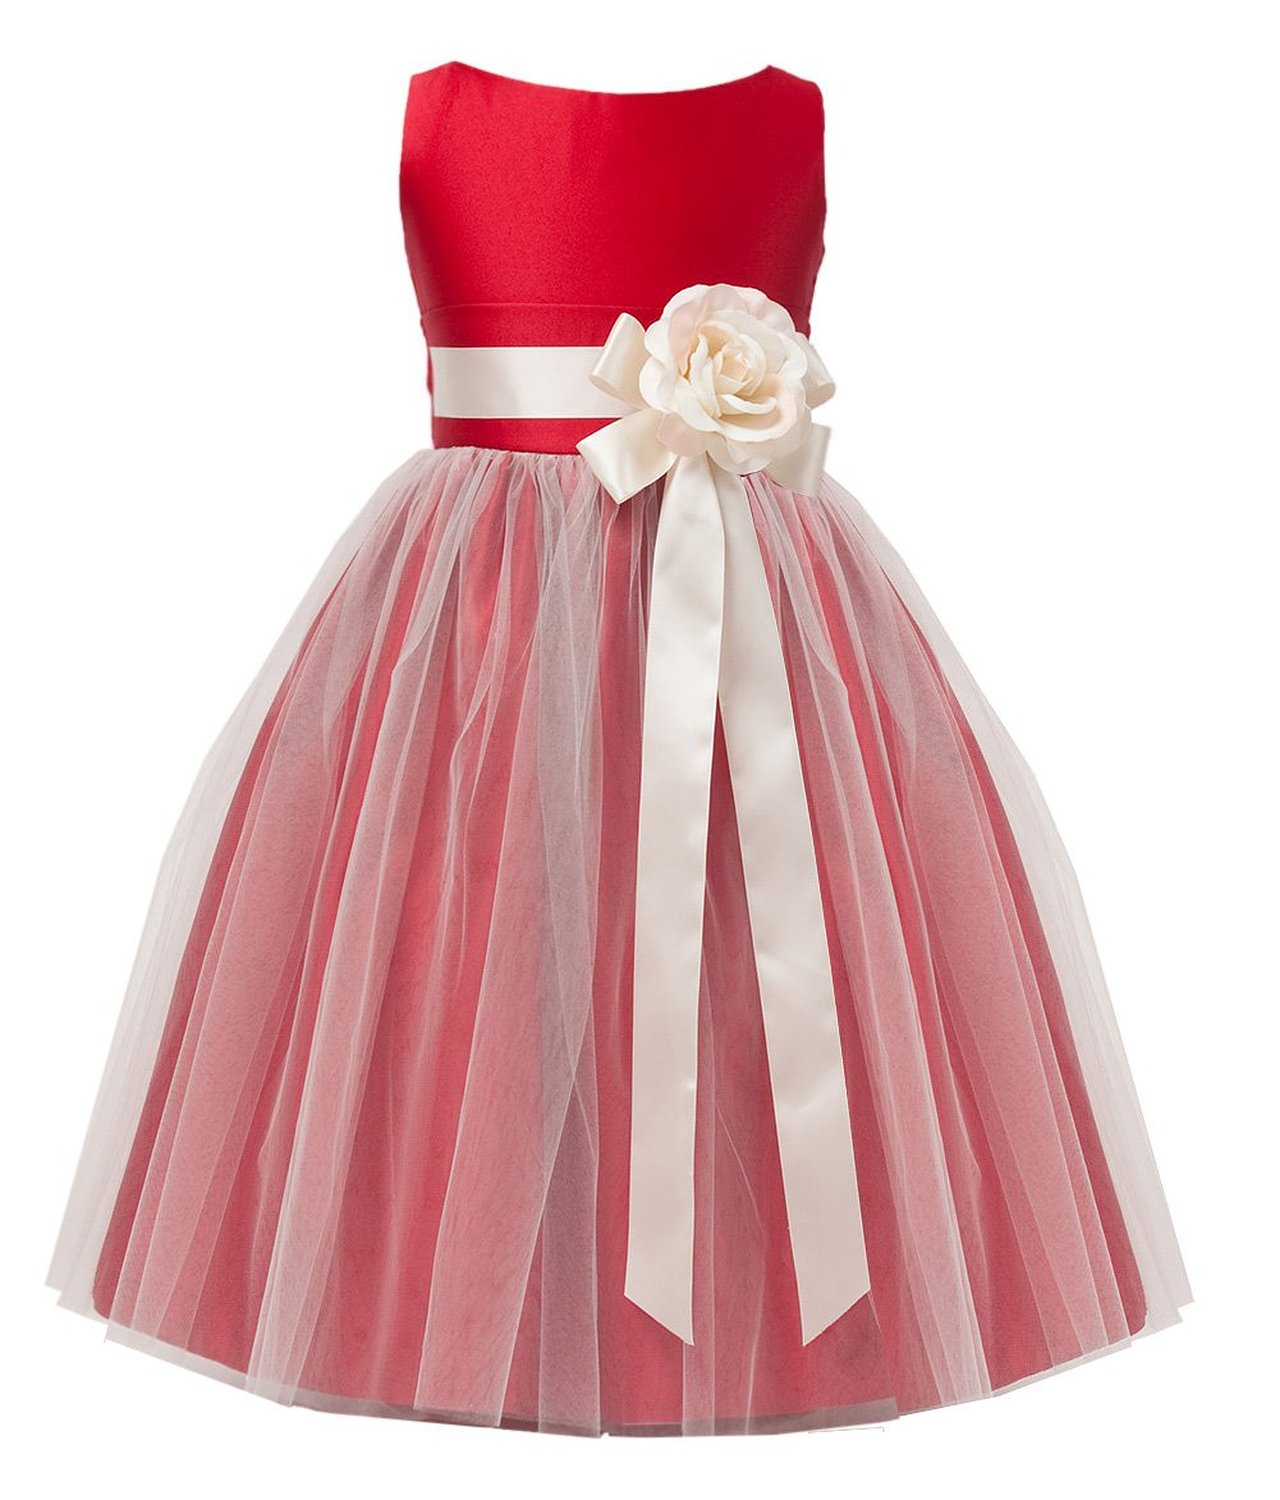 Sweet Kids Little Girls' Vintage Style Satin and Tulle Flower Girl Pageant Dress FGD-81303 фото